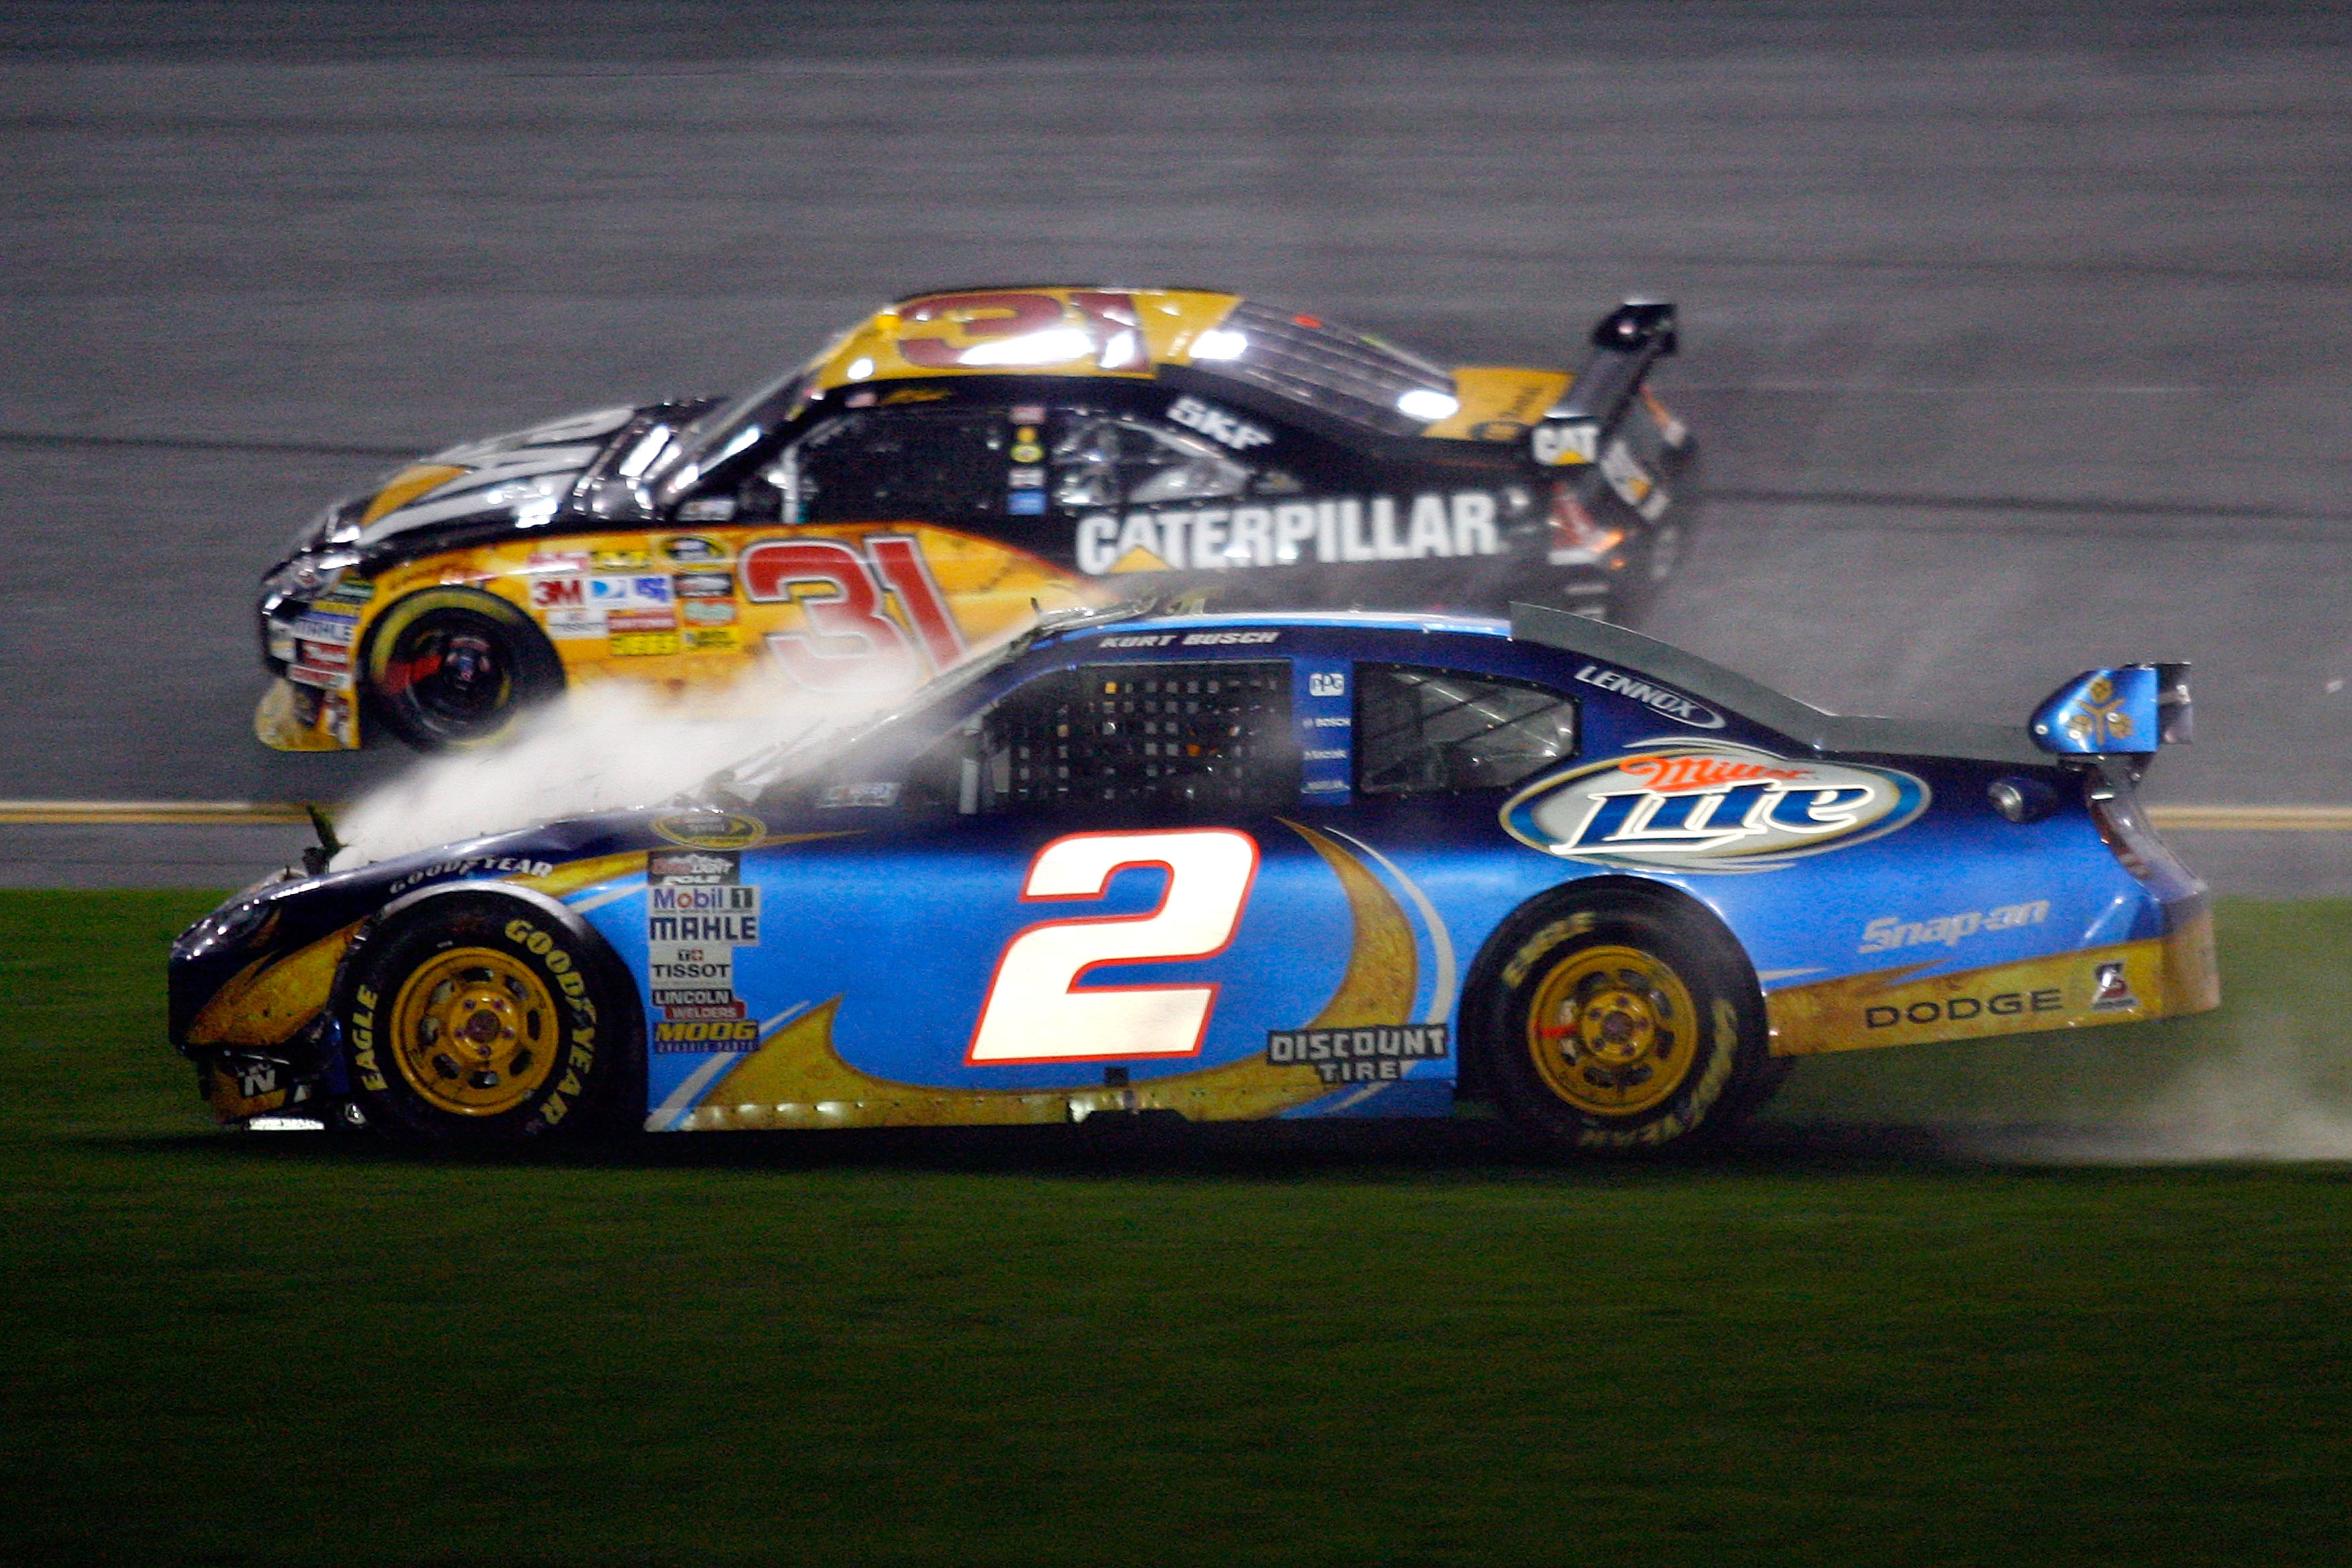 Kurt Busch ended his 2010 Daytona 500 wrecked on the infield.